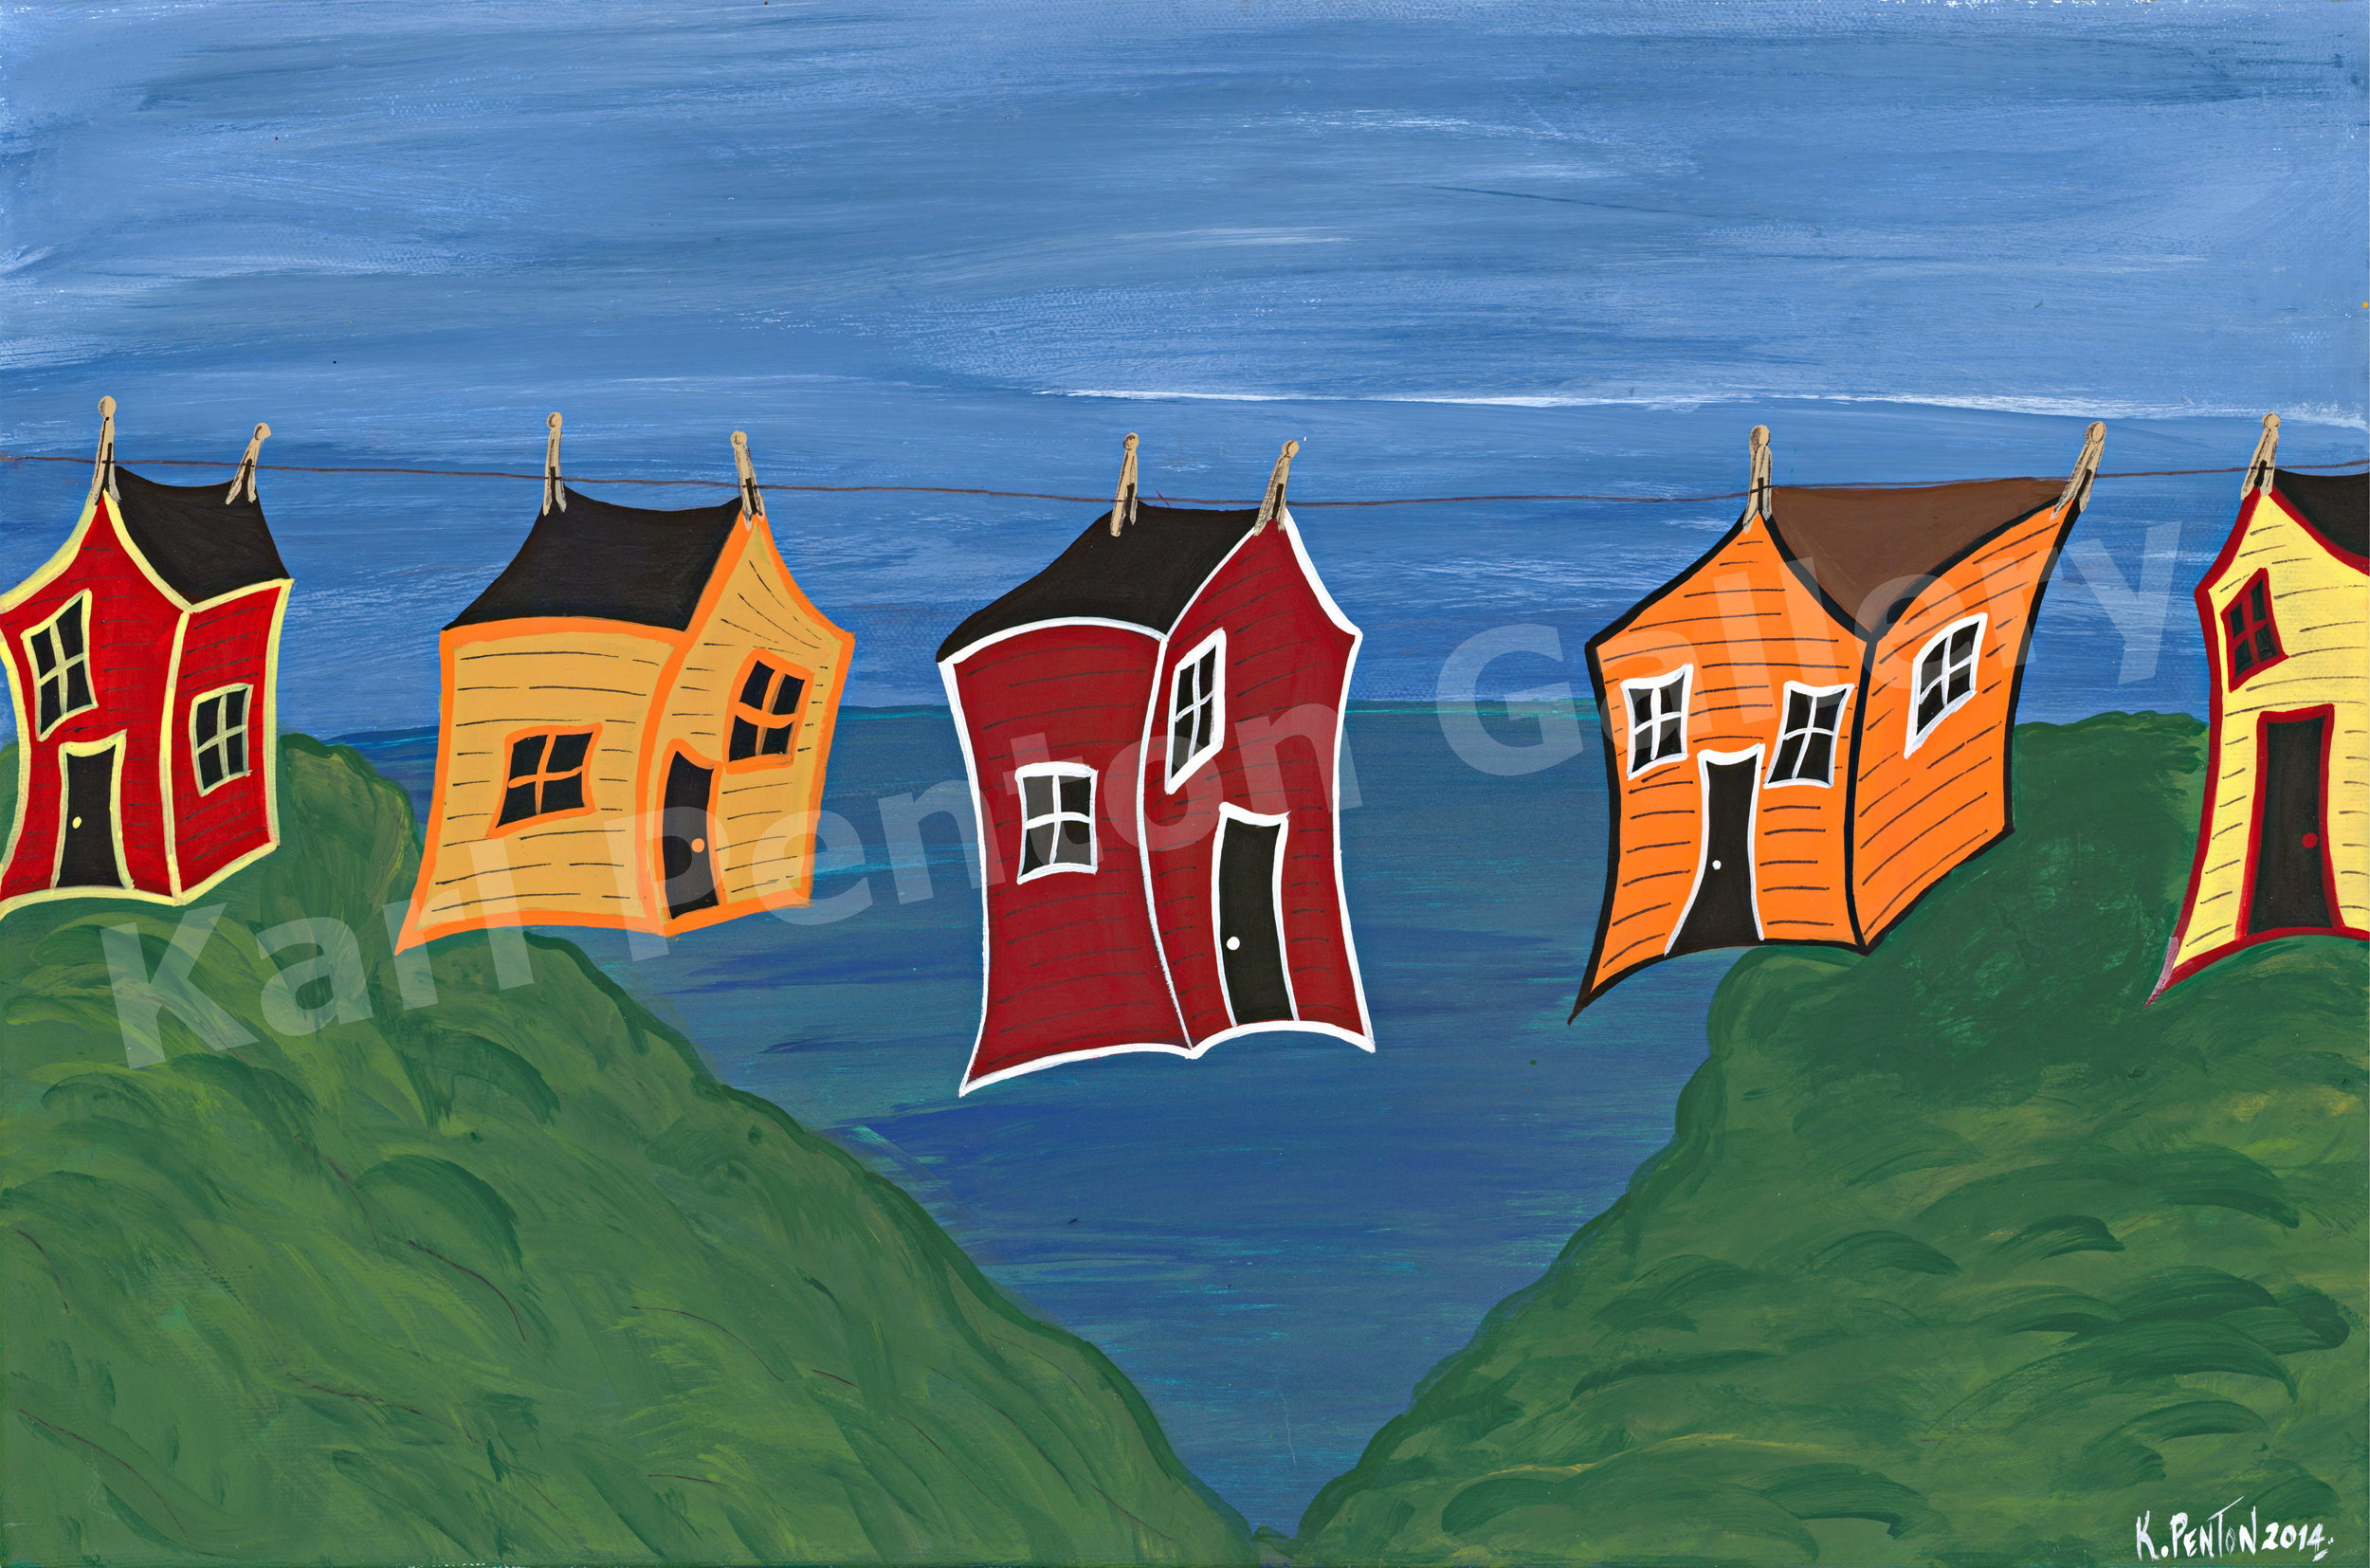 Blowin' in the Wind - Considered one of Karl's signature pieces, his whimsical painting captures the joy East Coasters feel about hanging out their clothes. If only we could hang our homes like quilts for that fresh clean sea breeze!(Original In Private Collection)